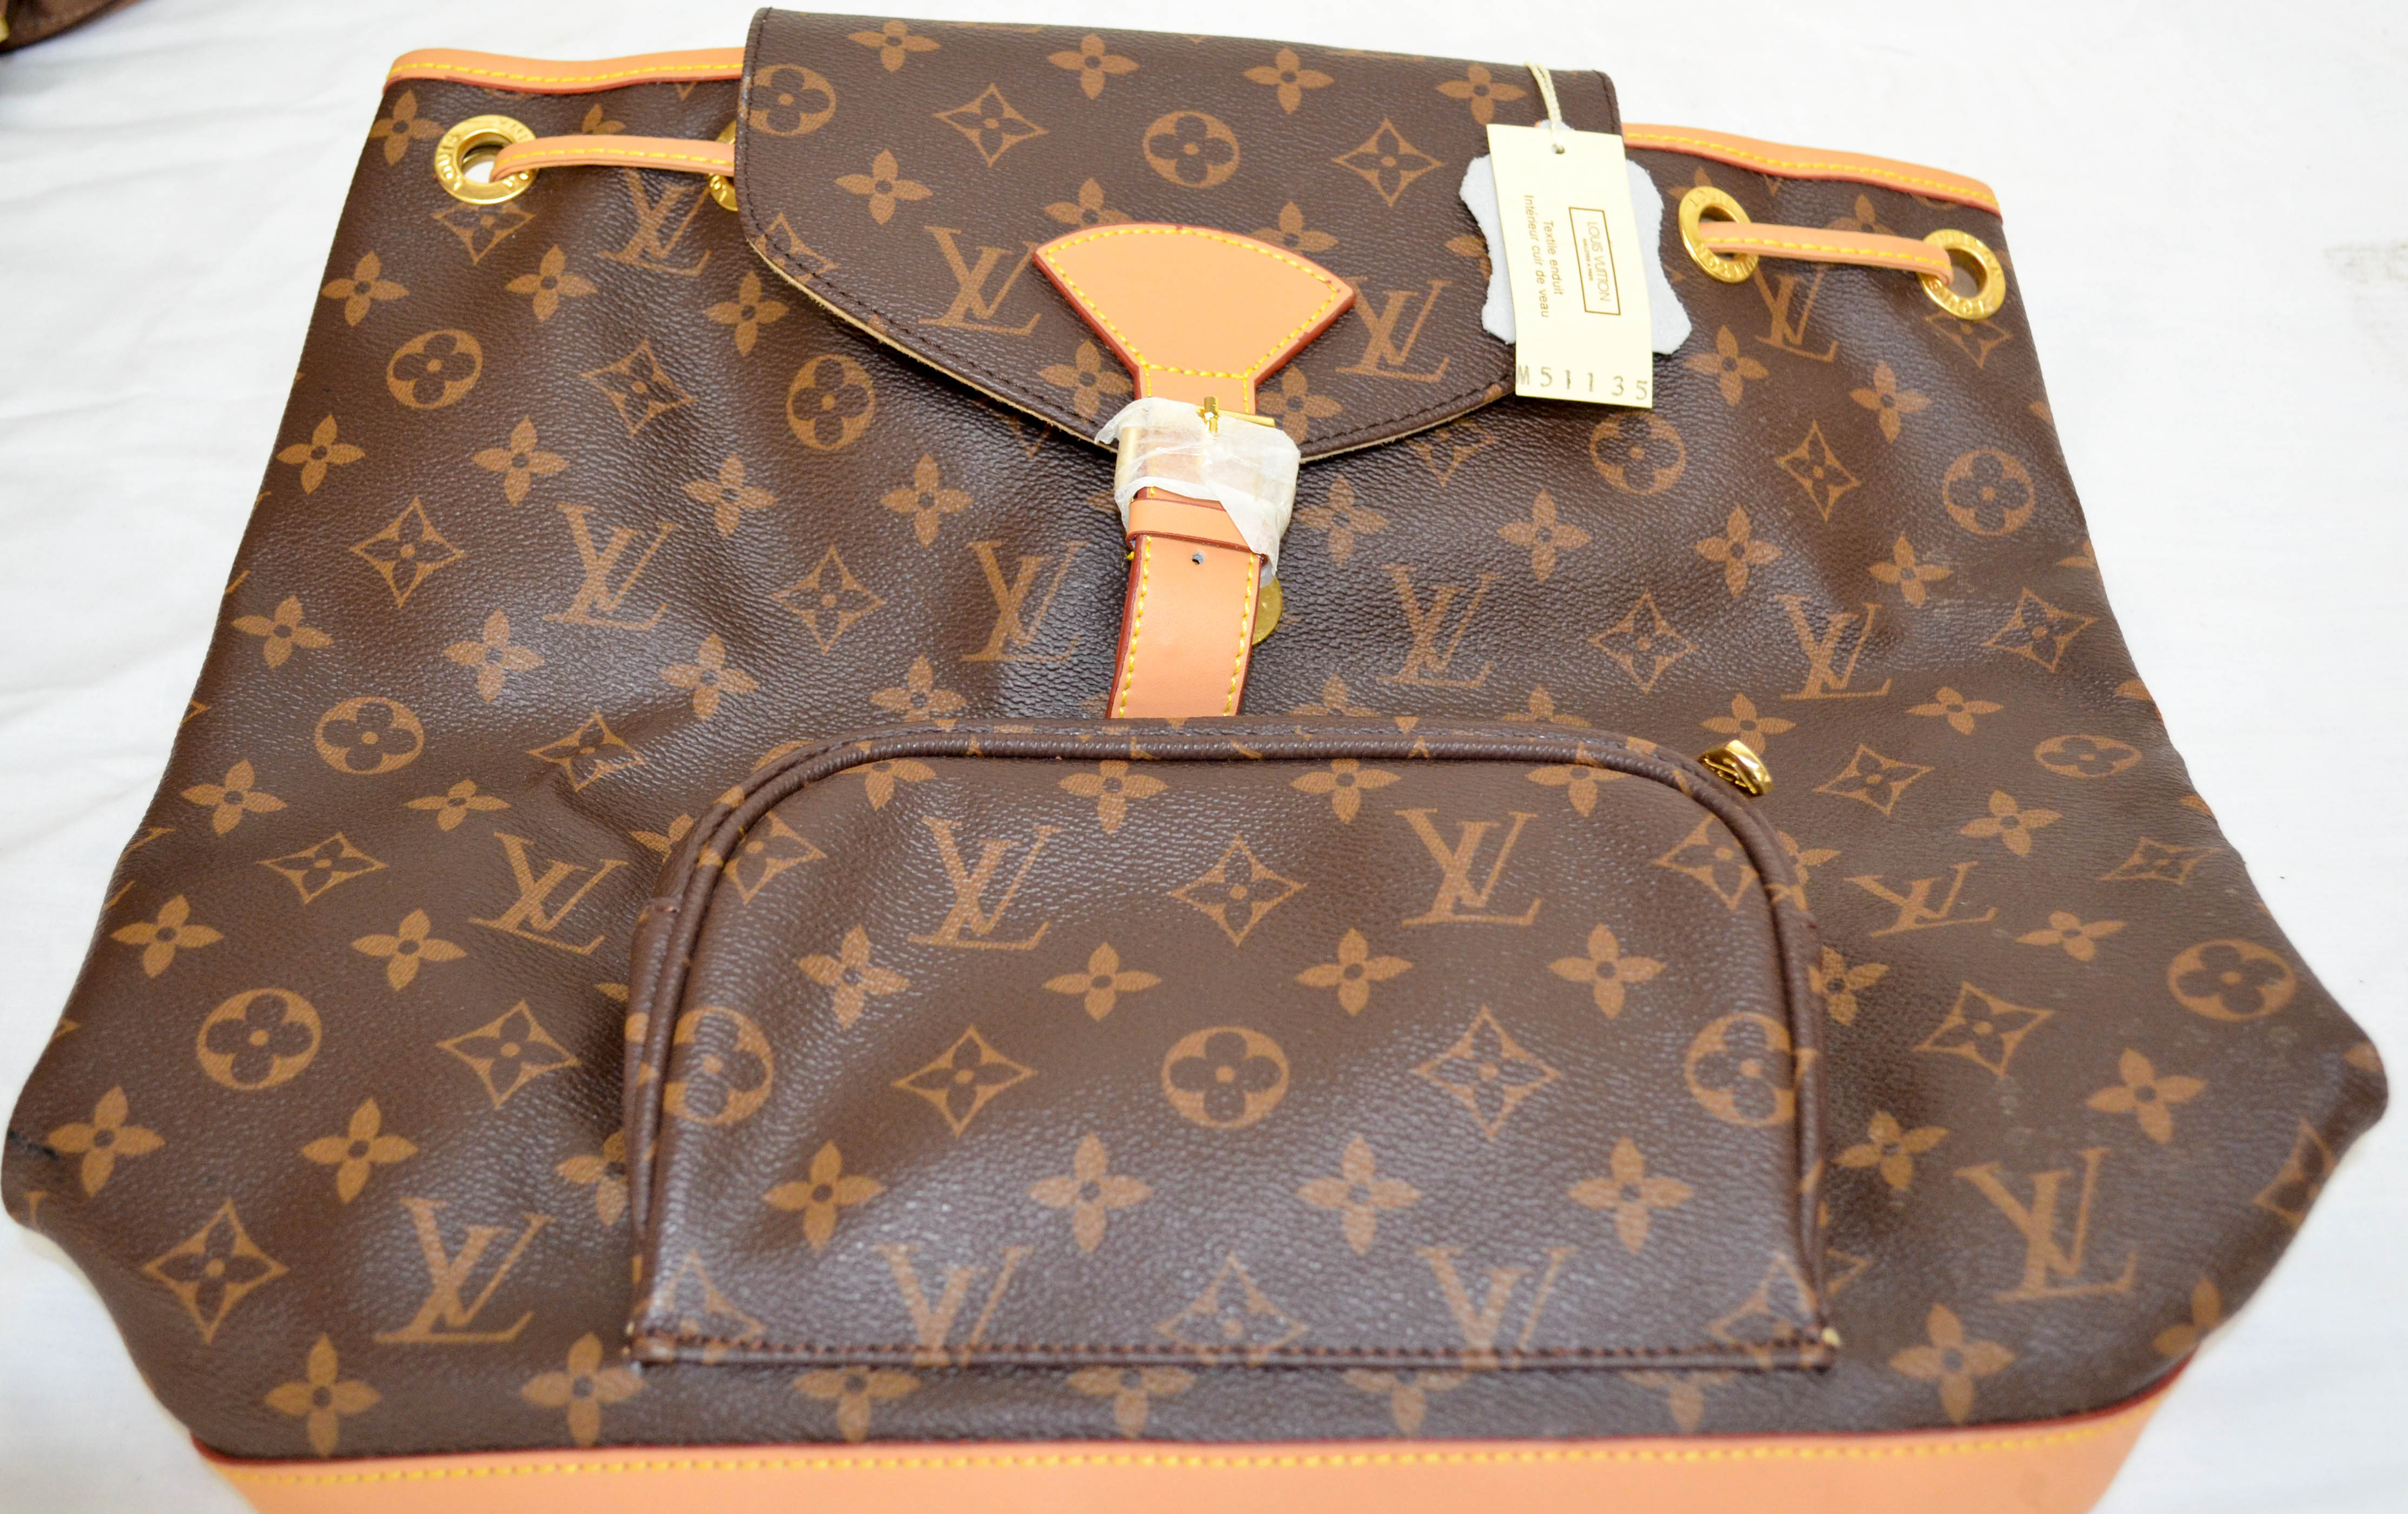 72 New Louis Vuitton Backpack